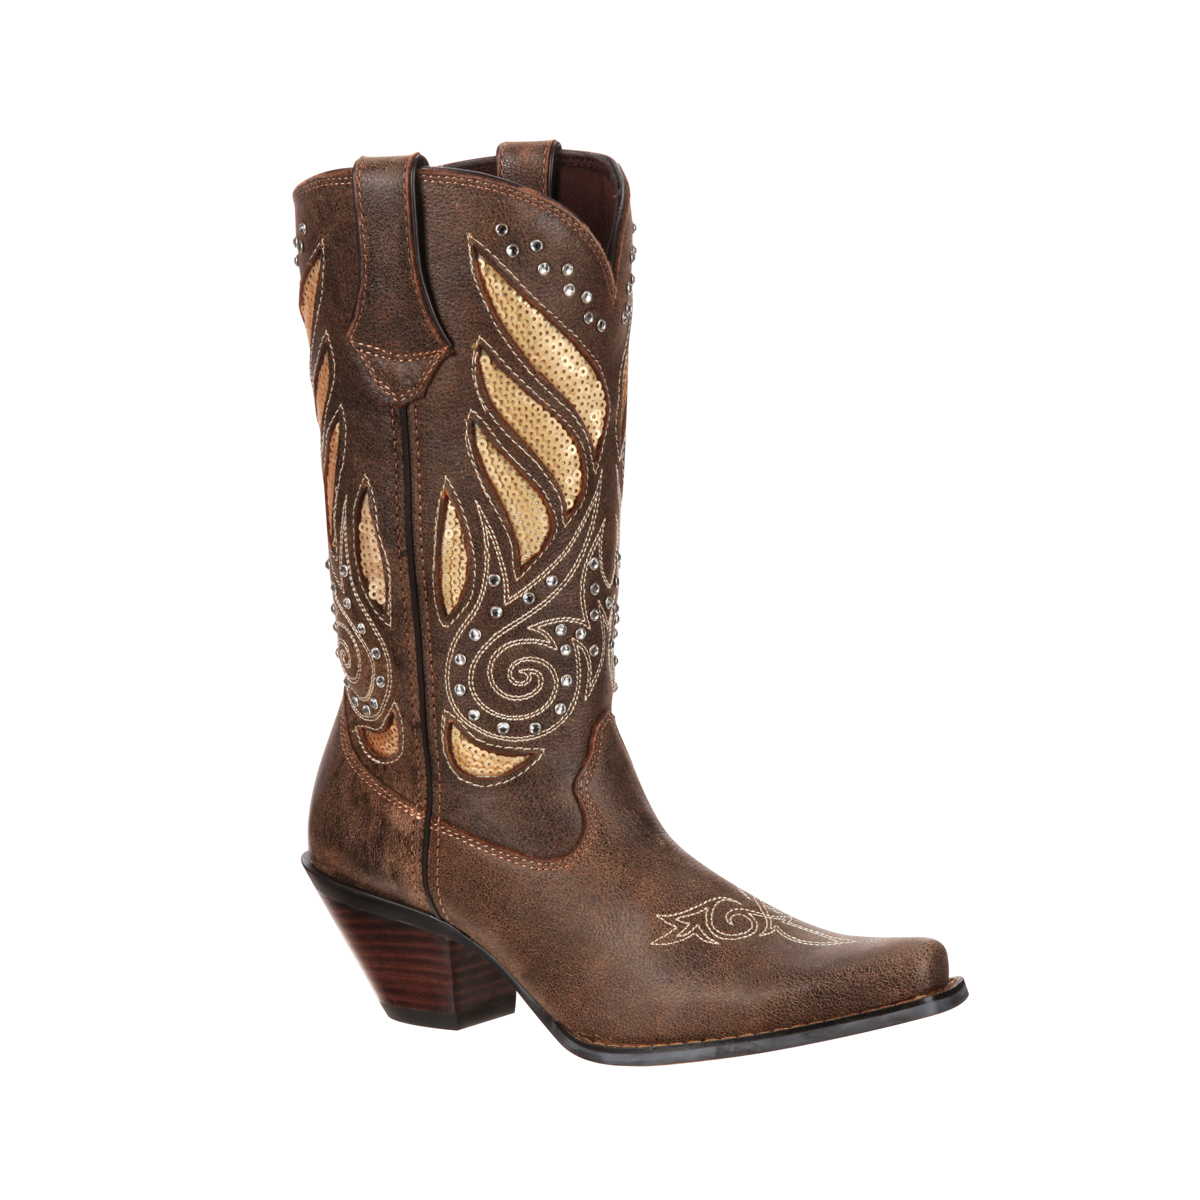 Creative Durango Womens Crush Pointed Toe Cowboy Boots Gunsmoke